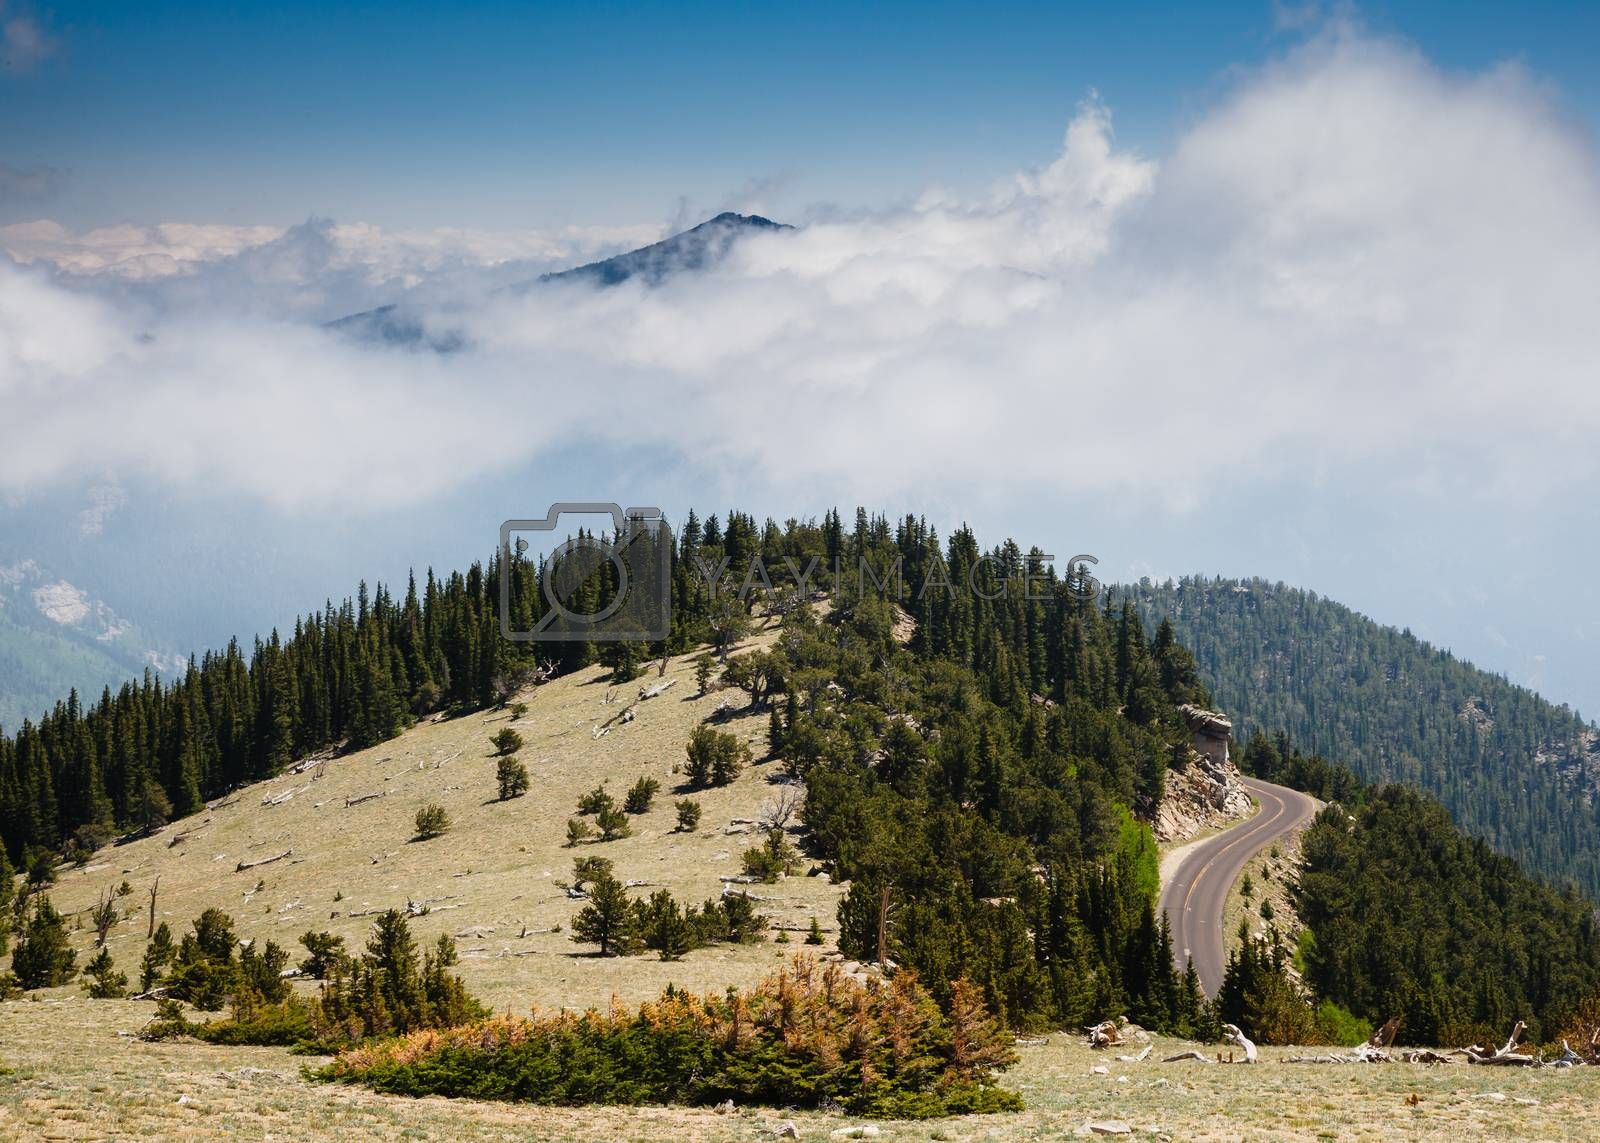 Winding road leading to the top of a mountain in Colorado.